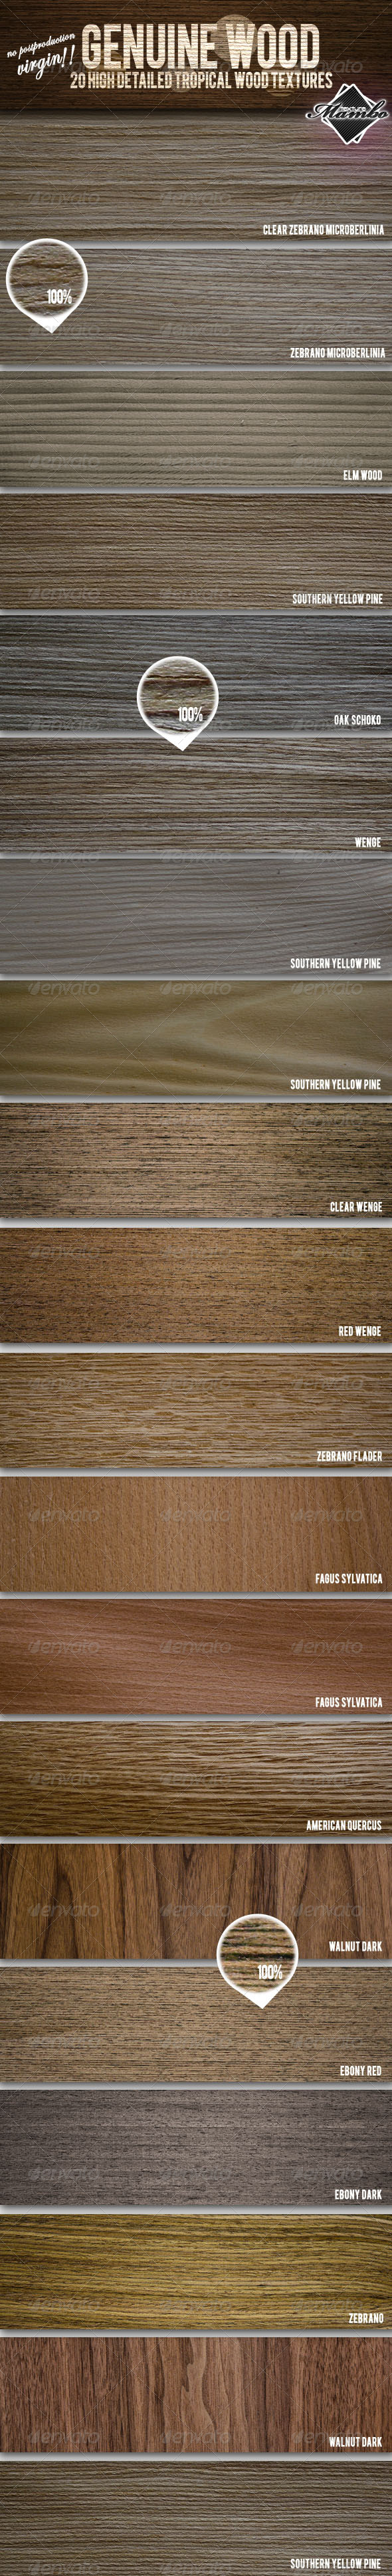 GraphicRiver Genuine Wood 20 Tropical Wood Textures 165235